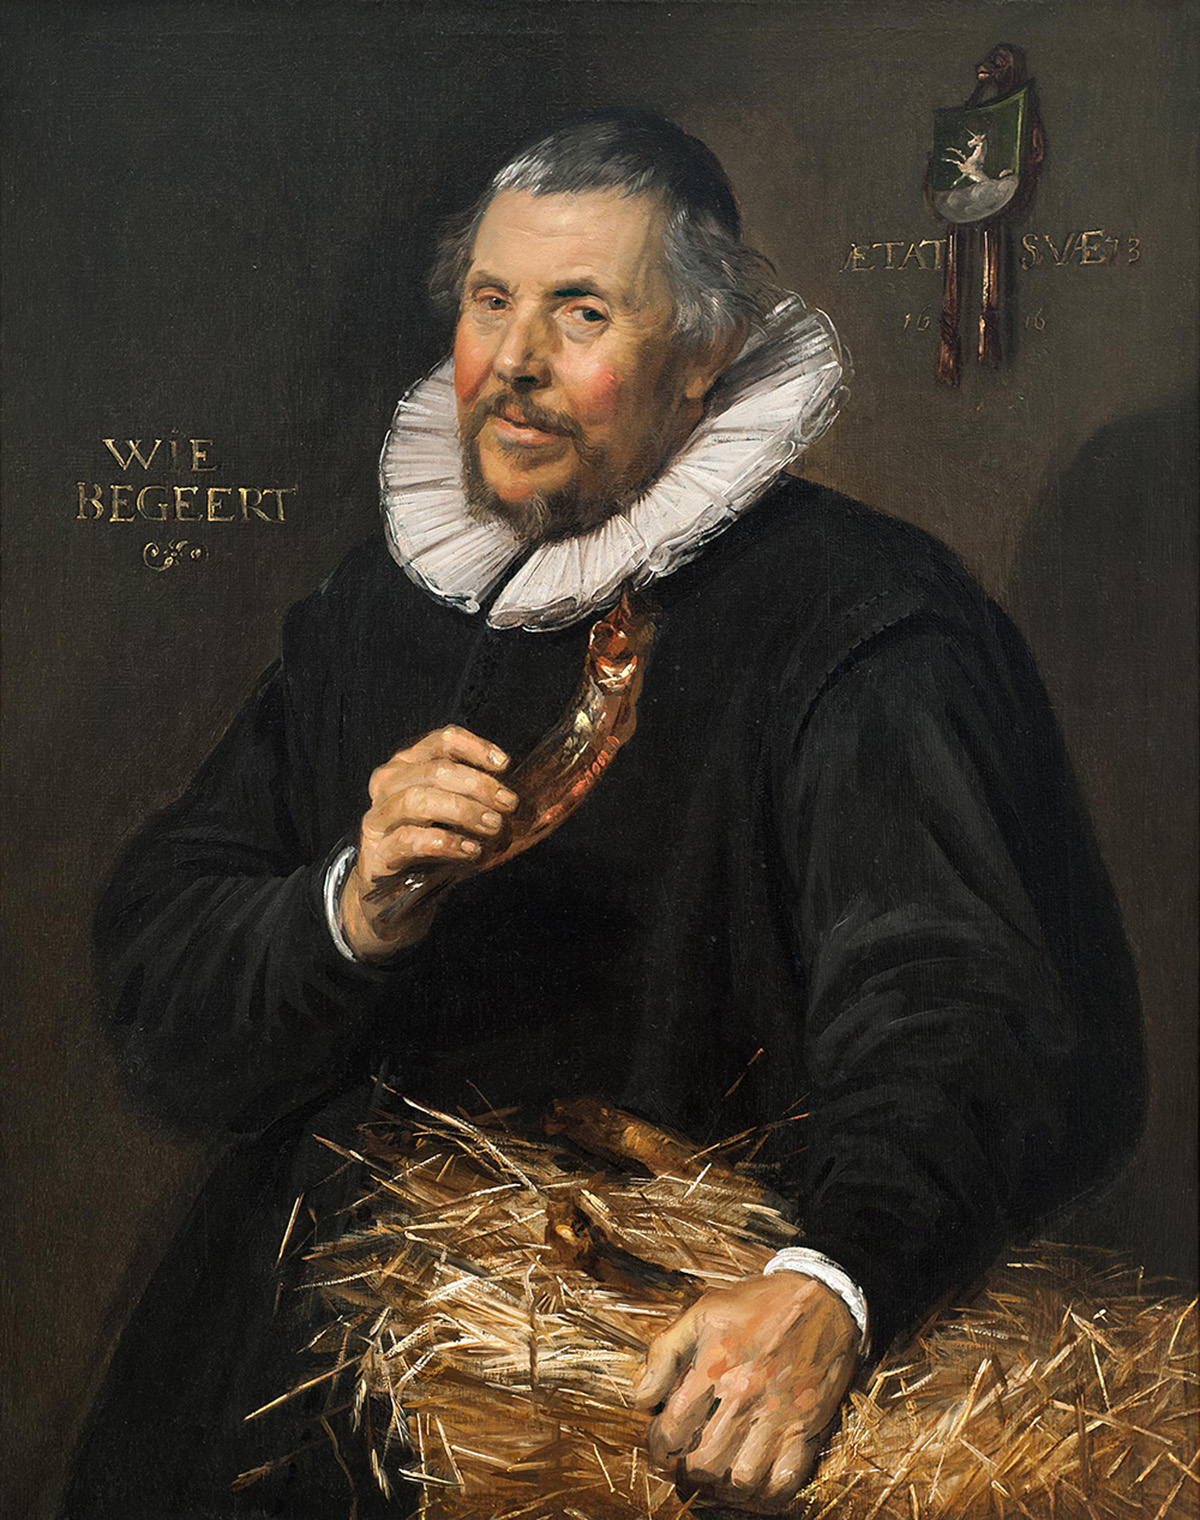 Portrait of older man holding a dried herring. His other hand rests on a bale of hay.